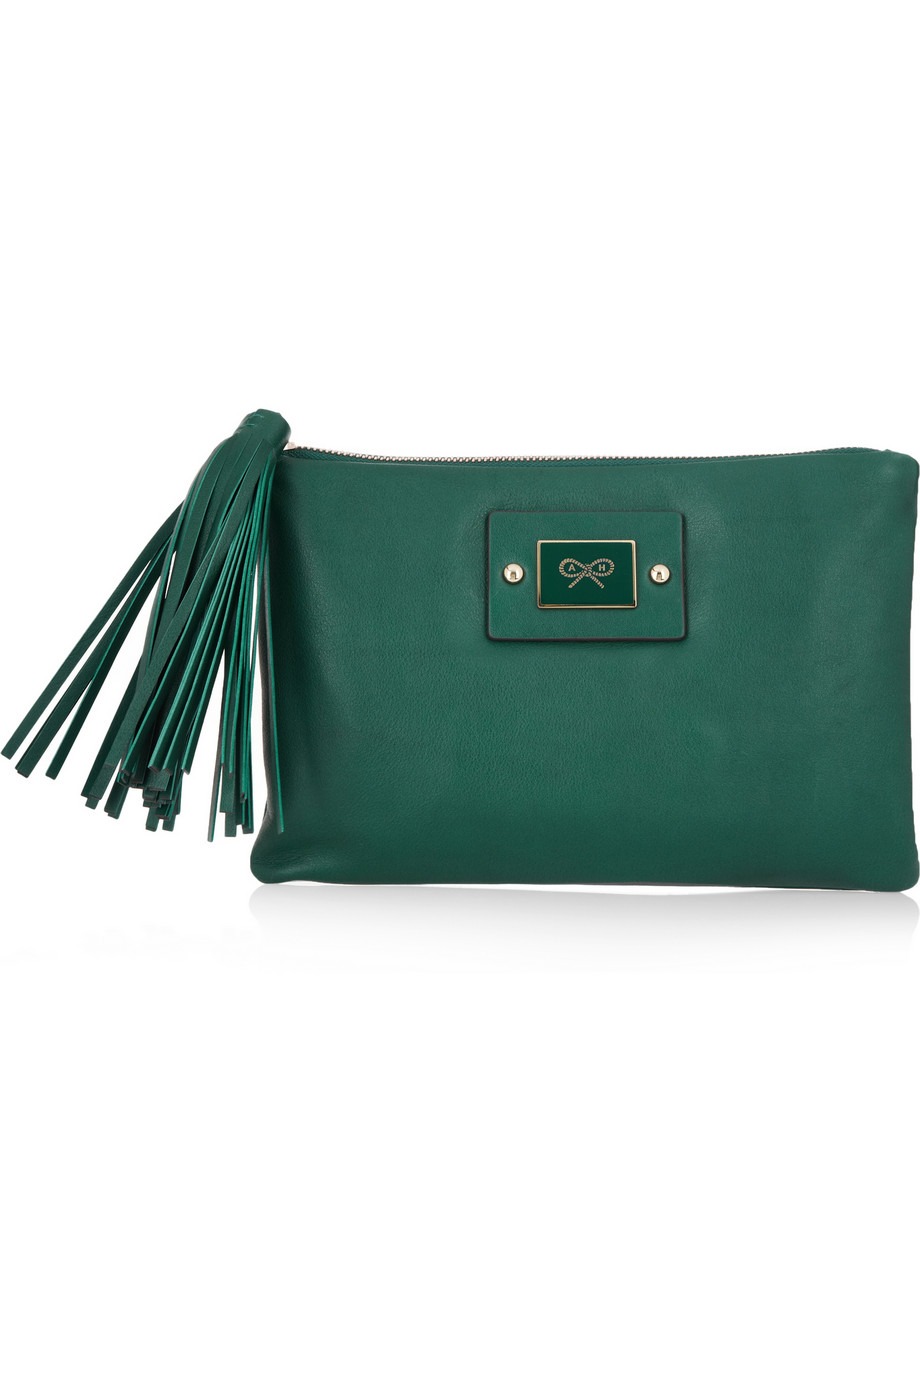 Faithful leather clutch | Anya Hindmarch | 60% off | THE OUTNET